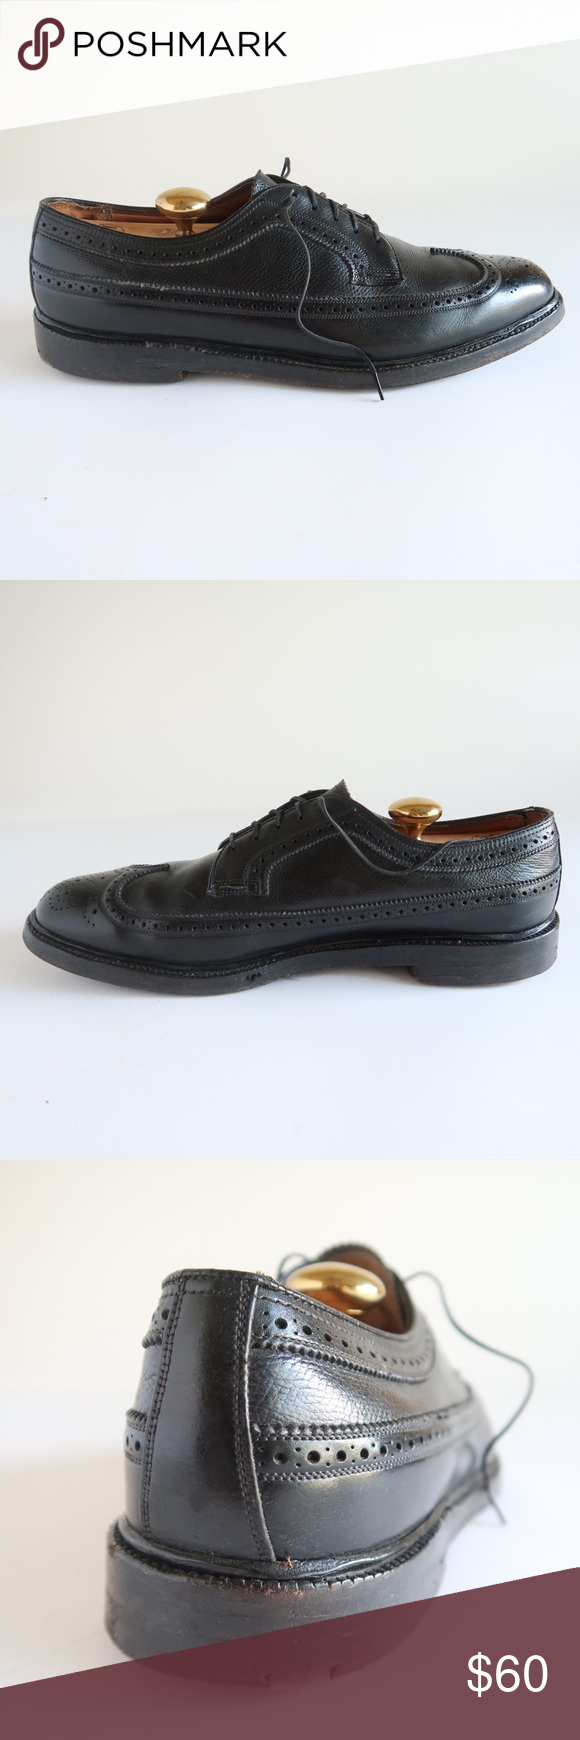 7bdc5c734c90 Florsheim Imperial Black Wingtip Dress Shoes Thank you for your interest.  Please note that even if pictured